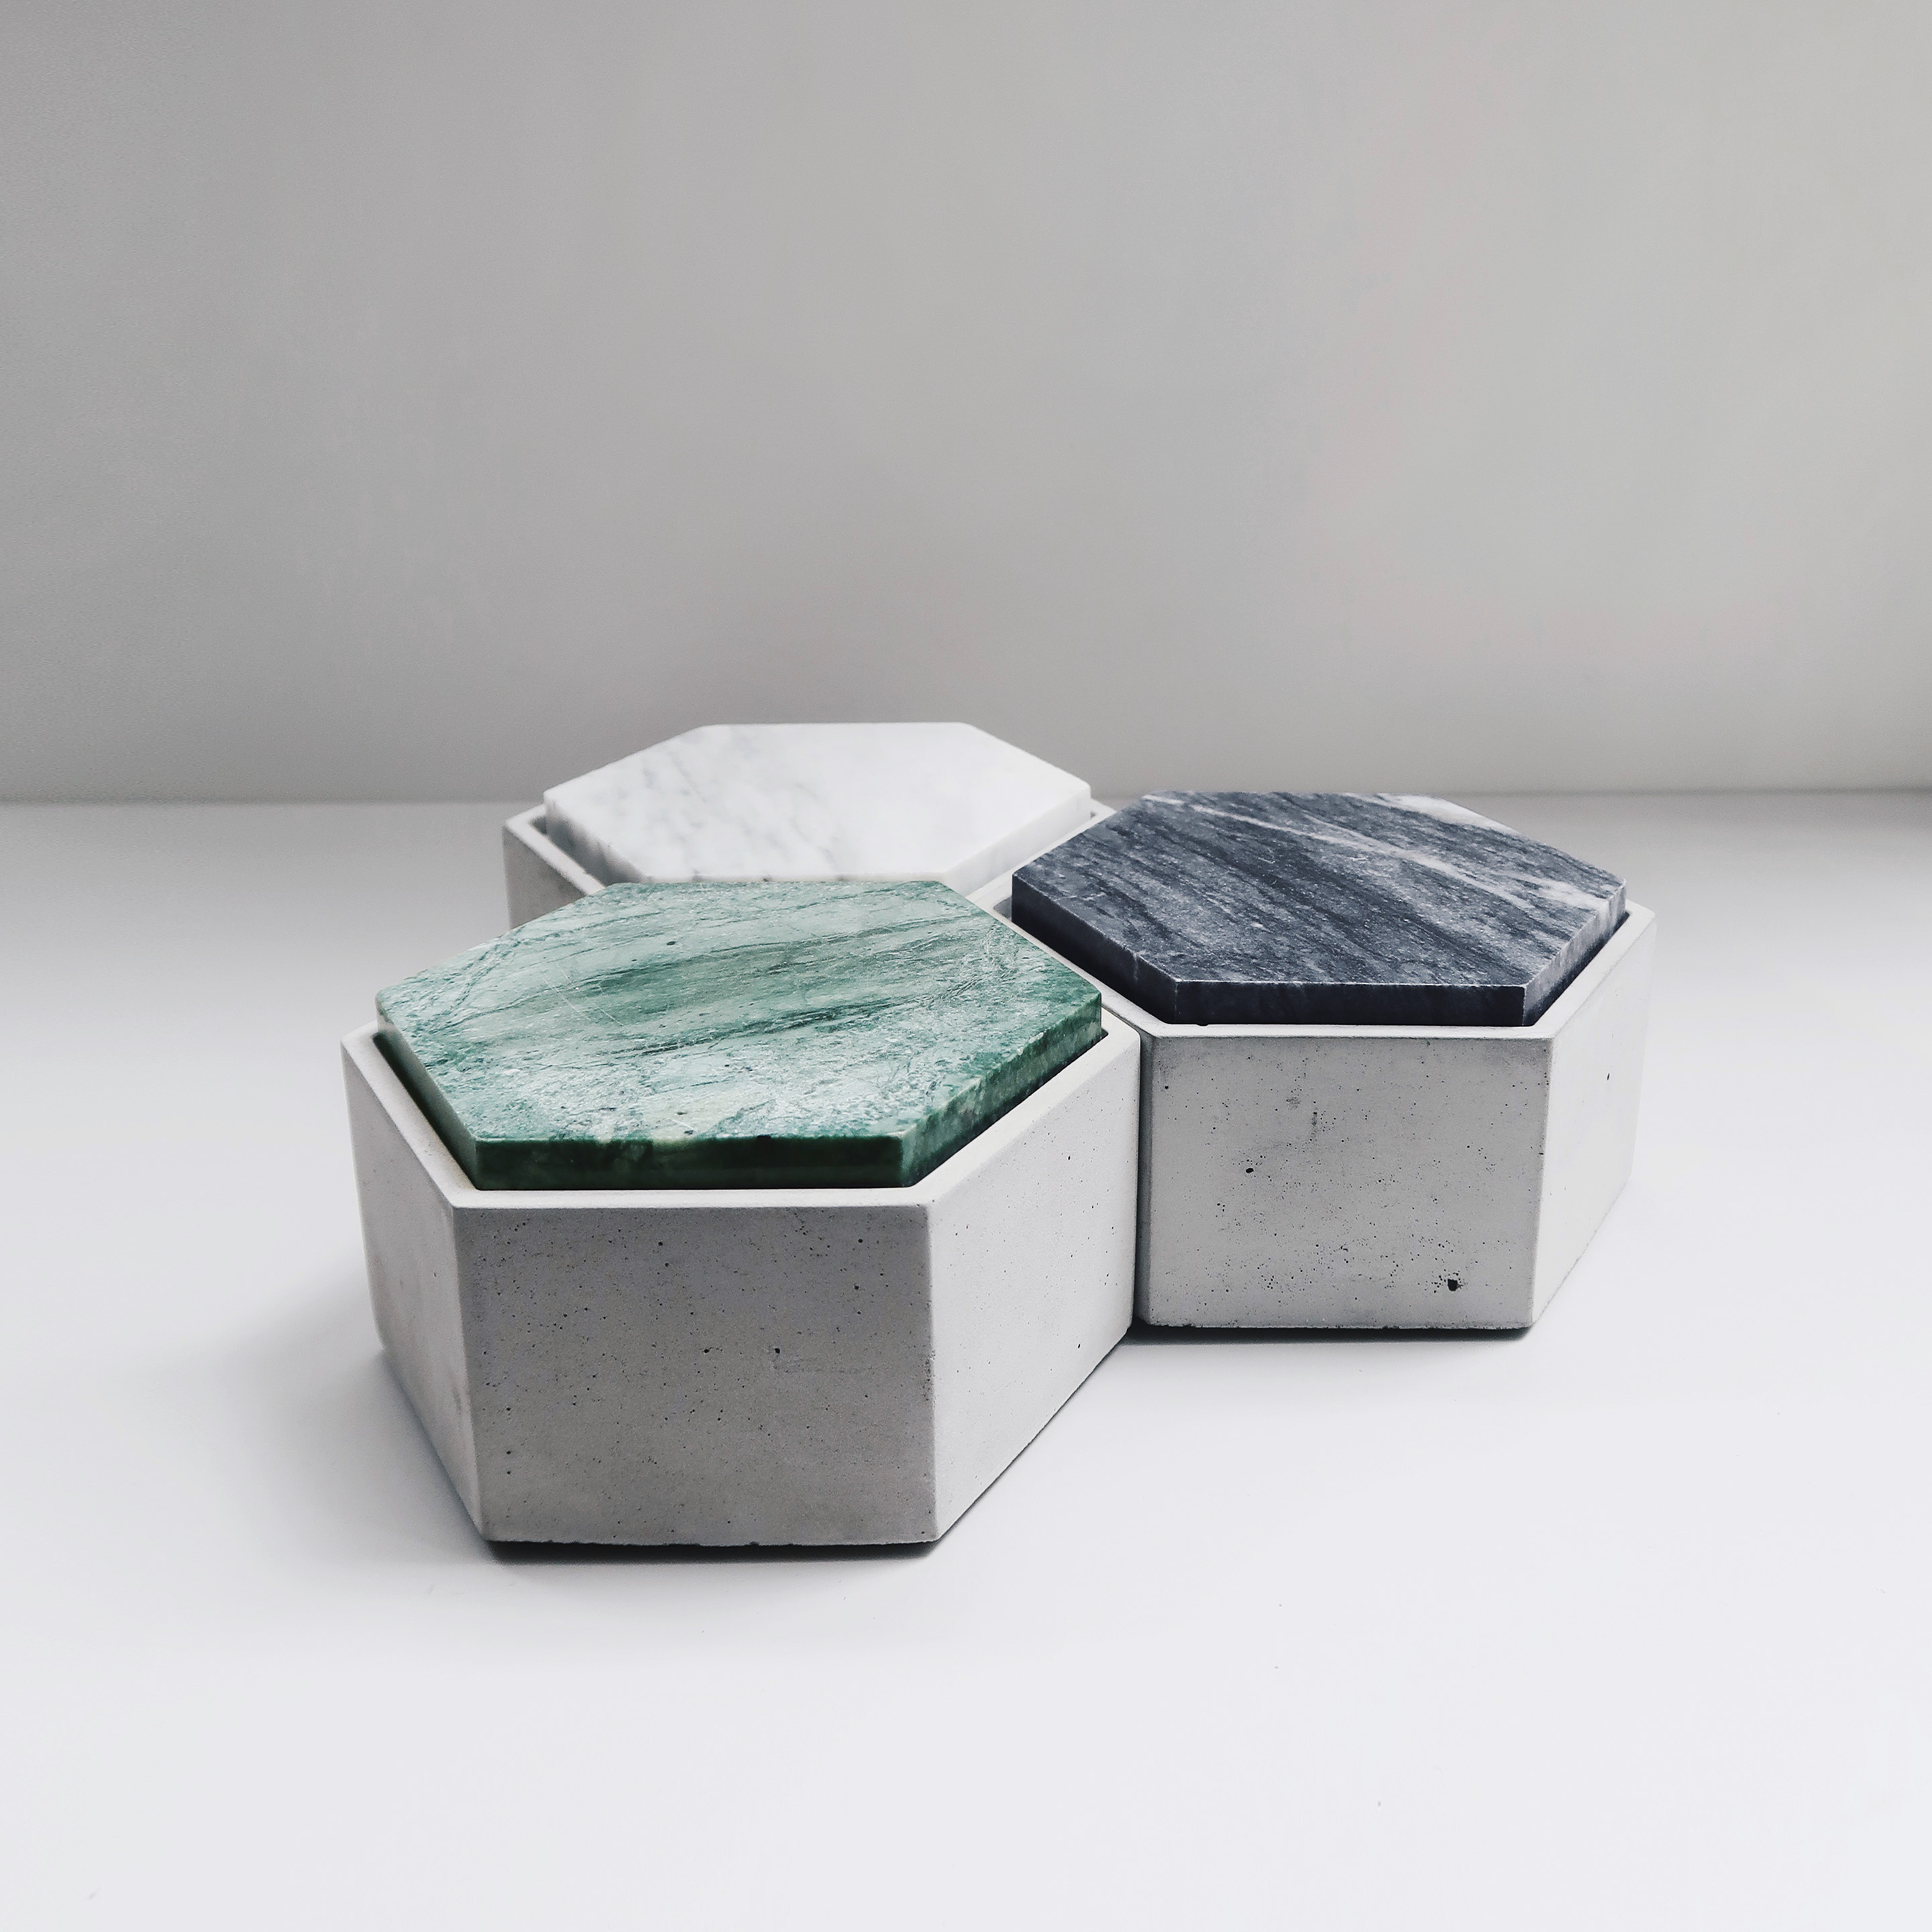 THE ROCK hexagonal concrete box with marble lid / Jewelry box / Ashtray